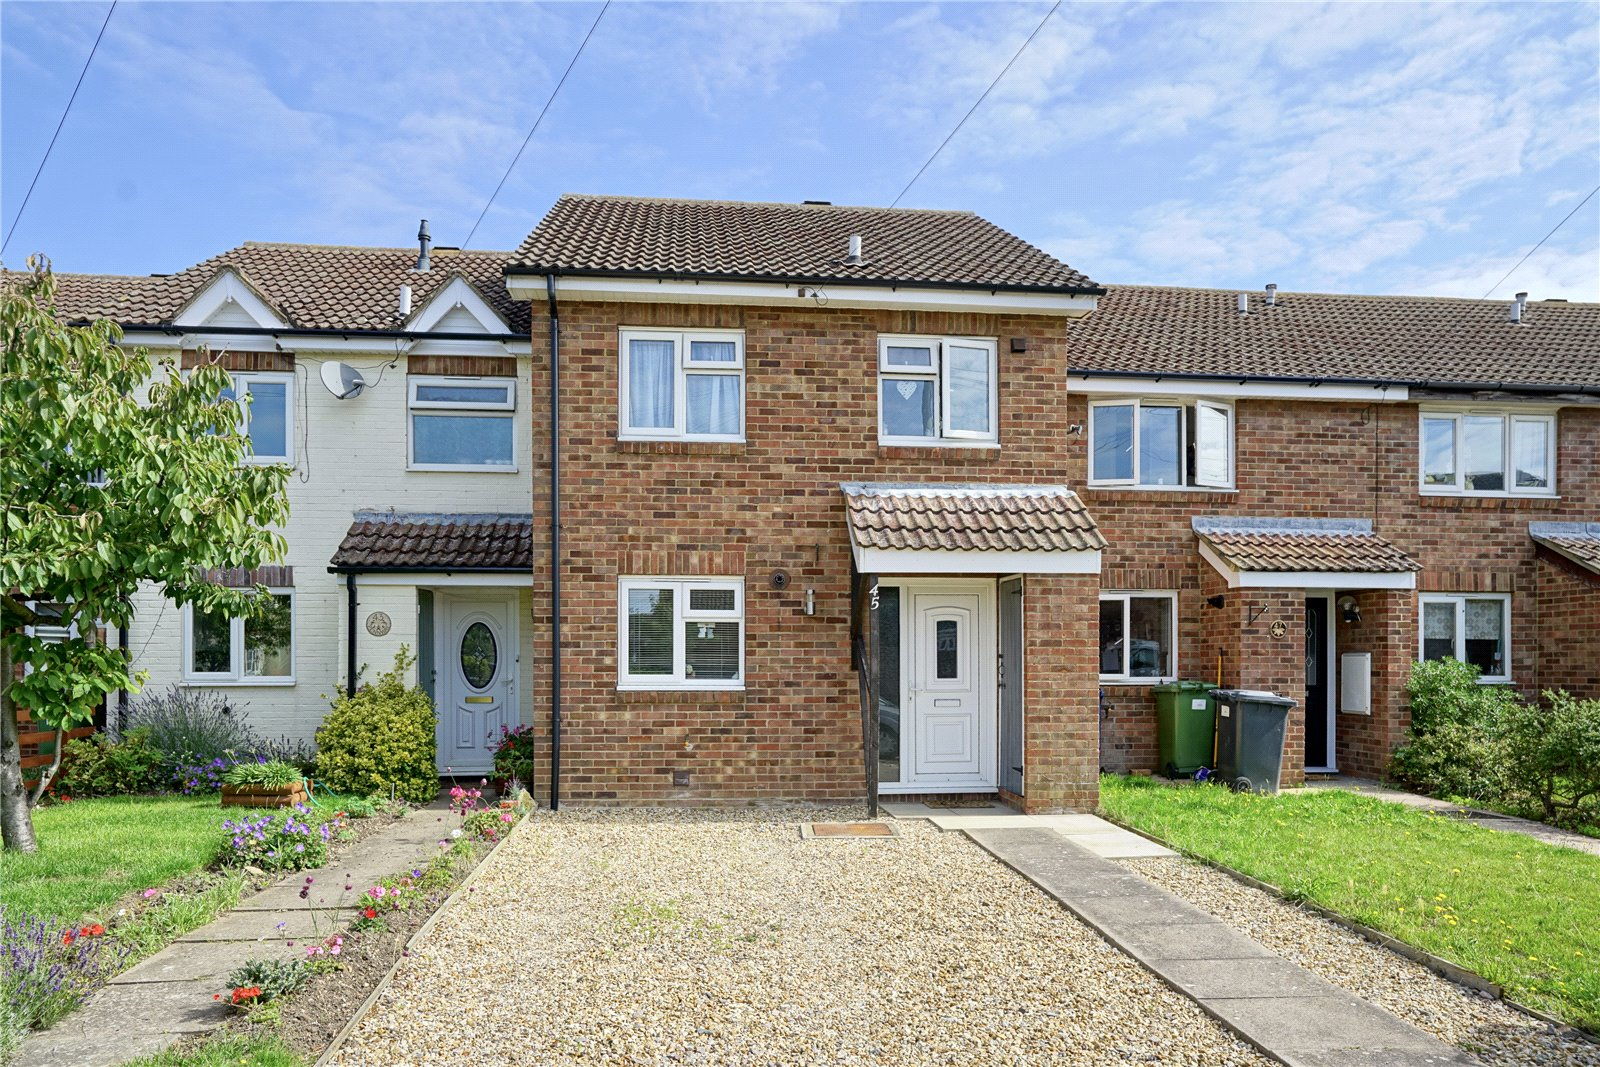 3 bed house for sale in Somersham, PE28 3JJ - Property Image 1